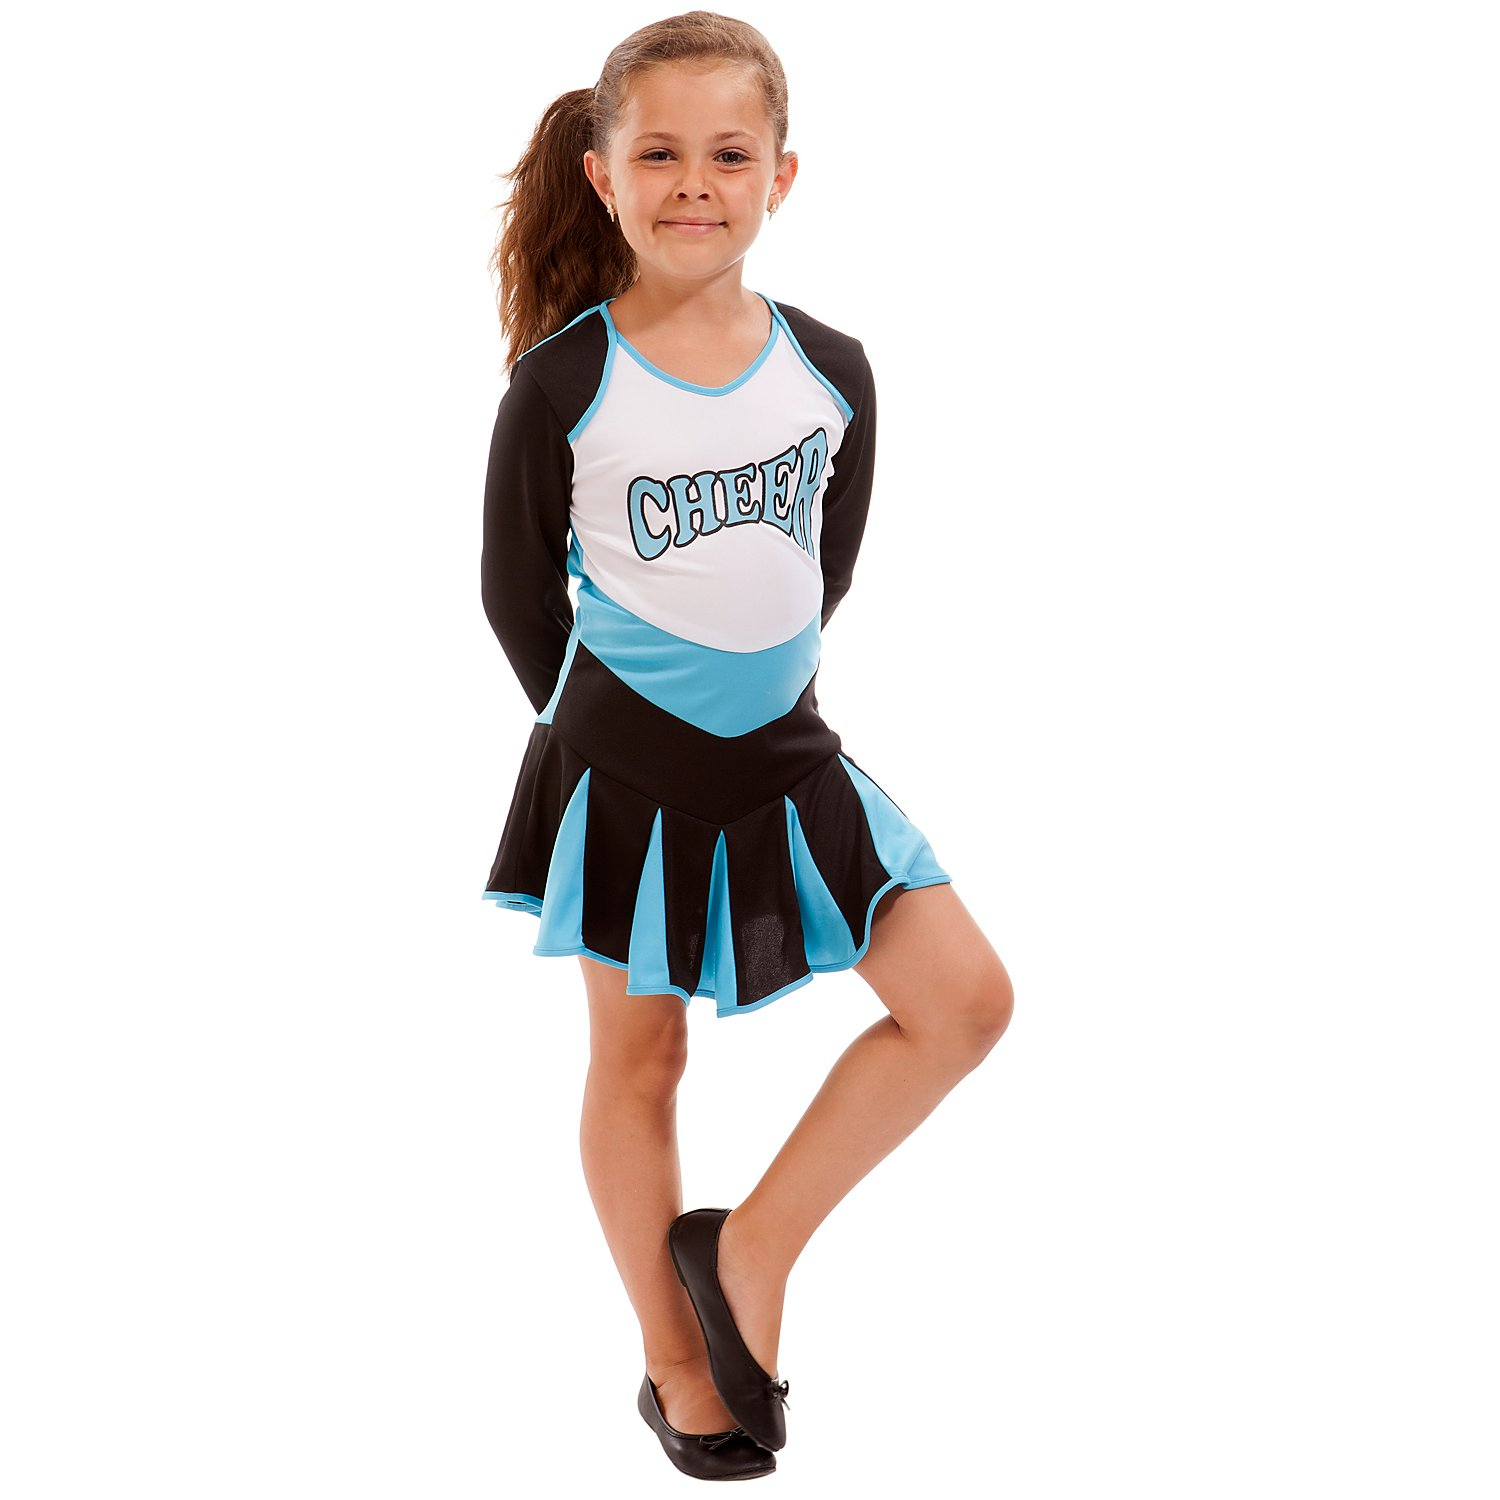 Cheerleader Kostum Fur Kinder Turkis Online Kaufen Buttinette